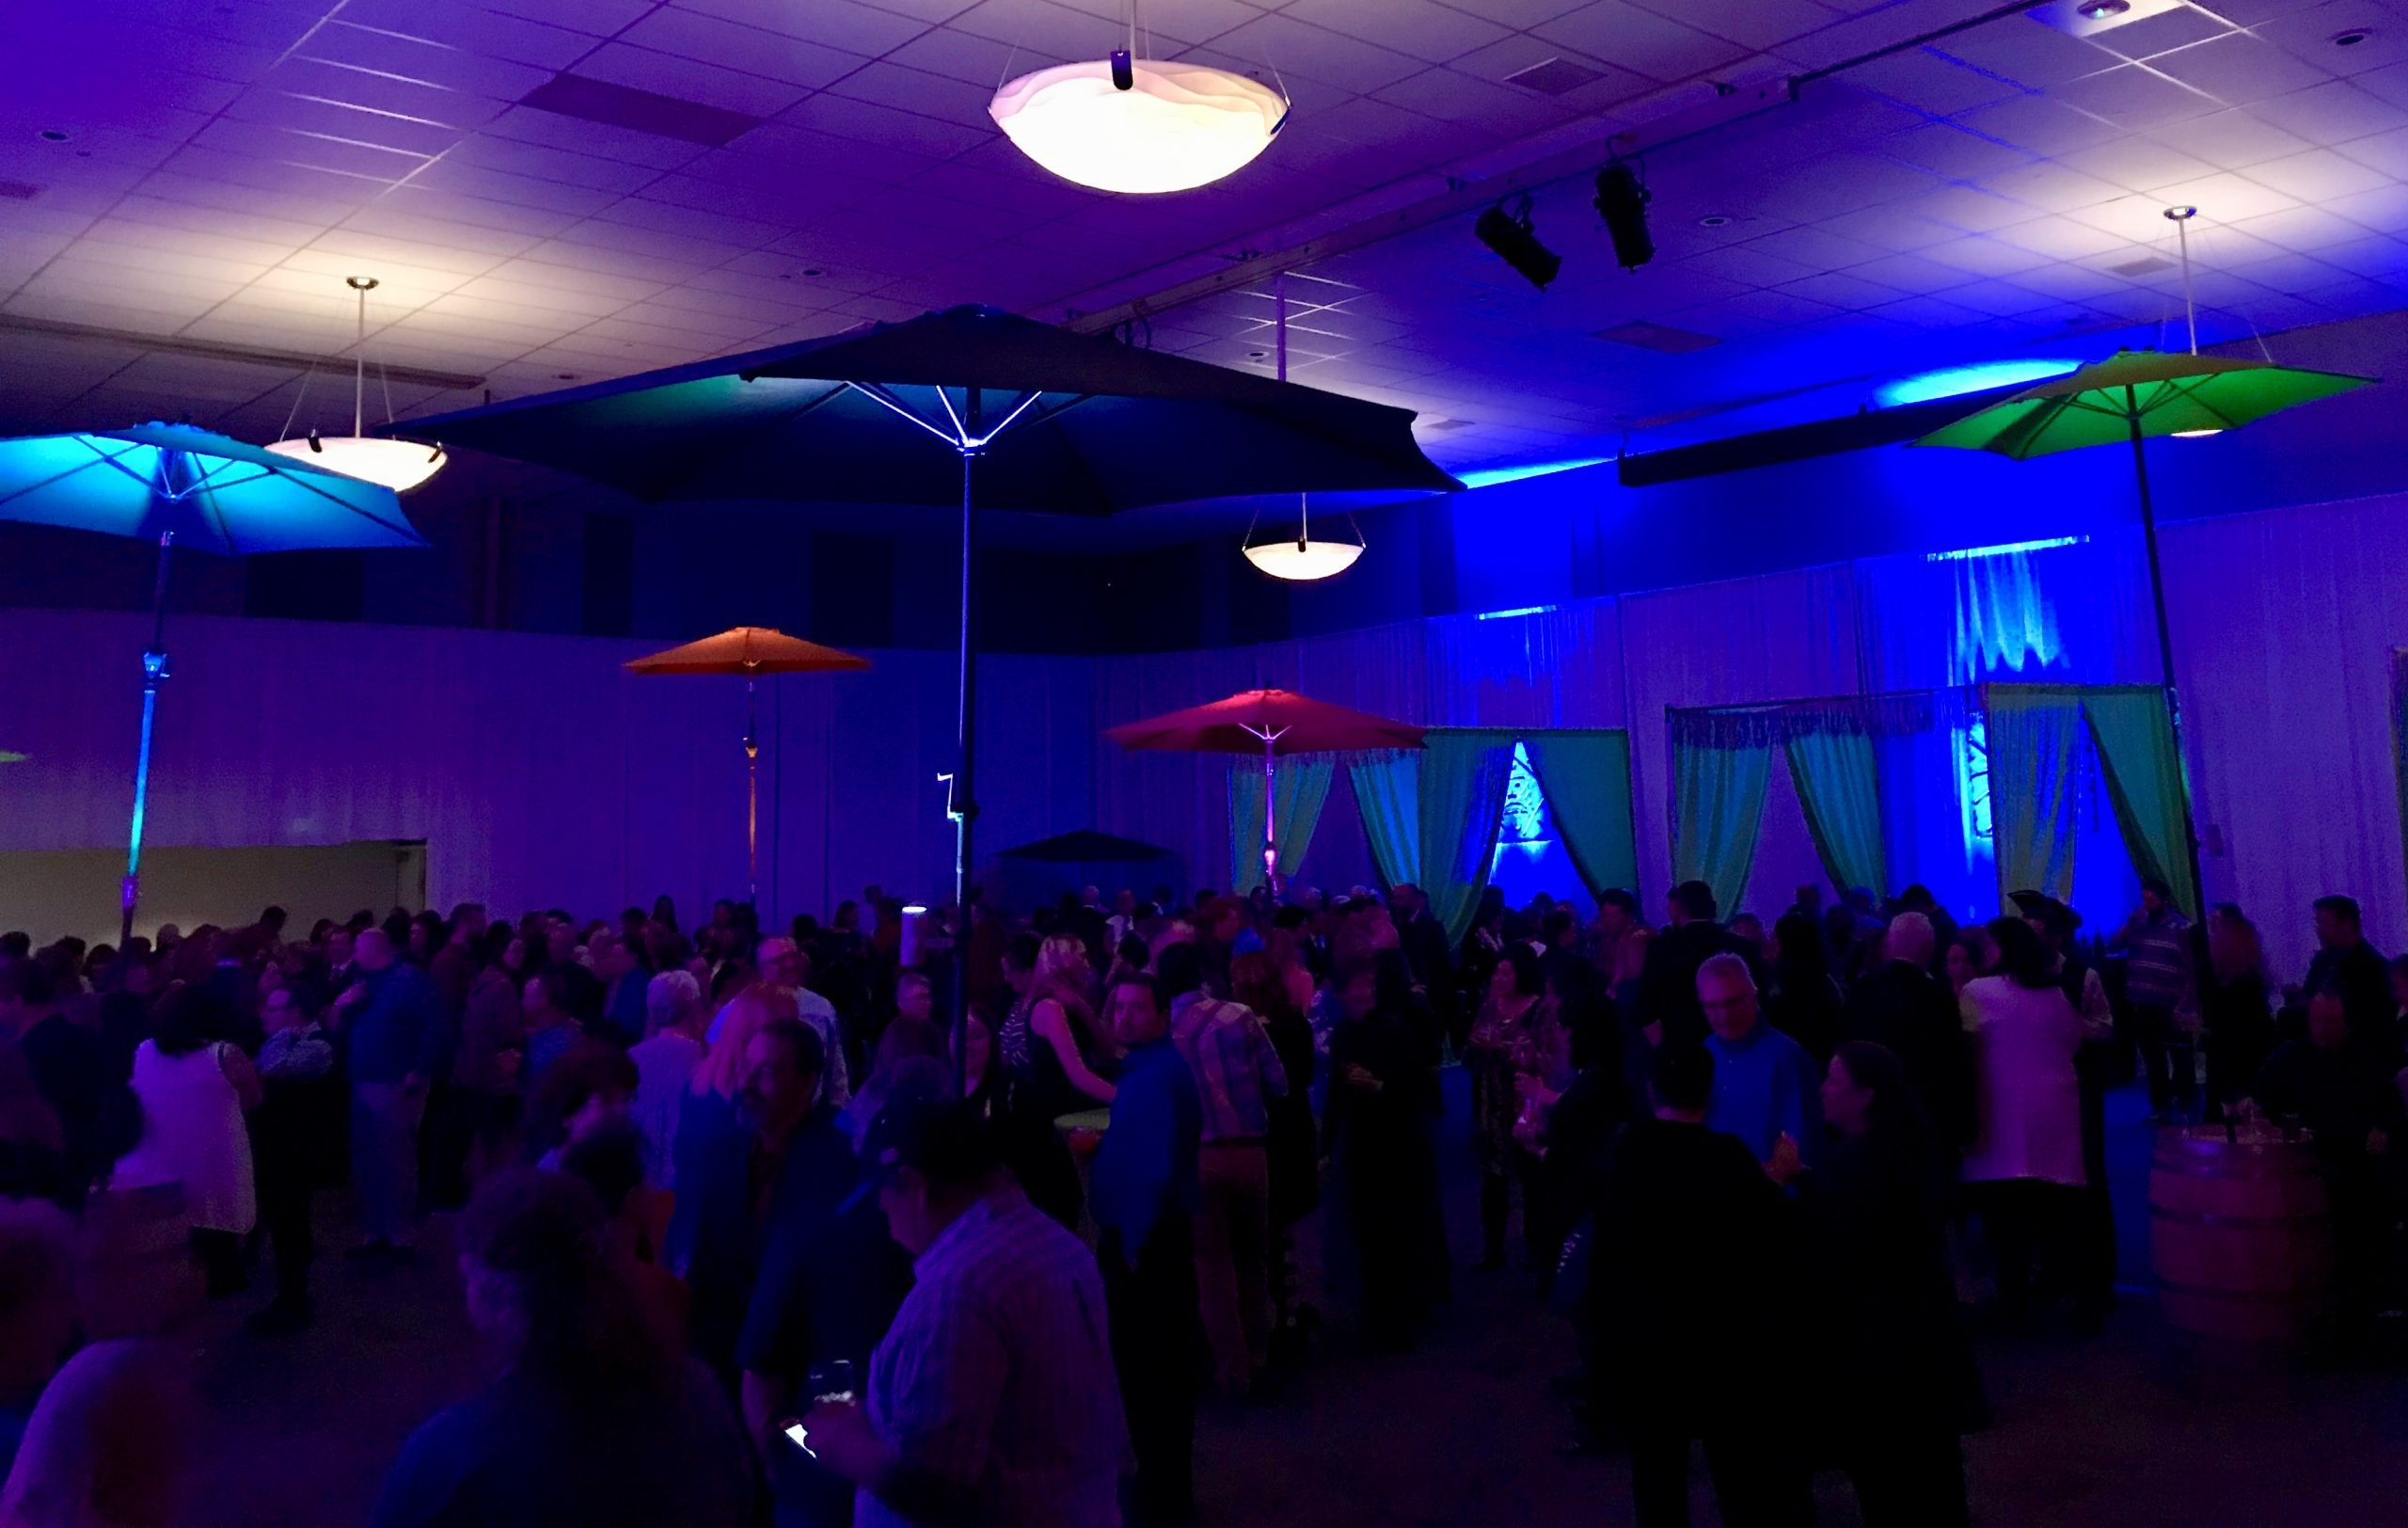 Corporate Event Rentals from Elite Events in Grand Junction